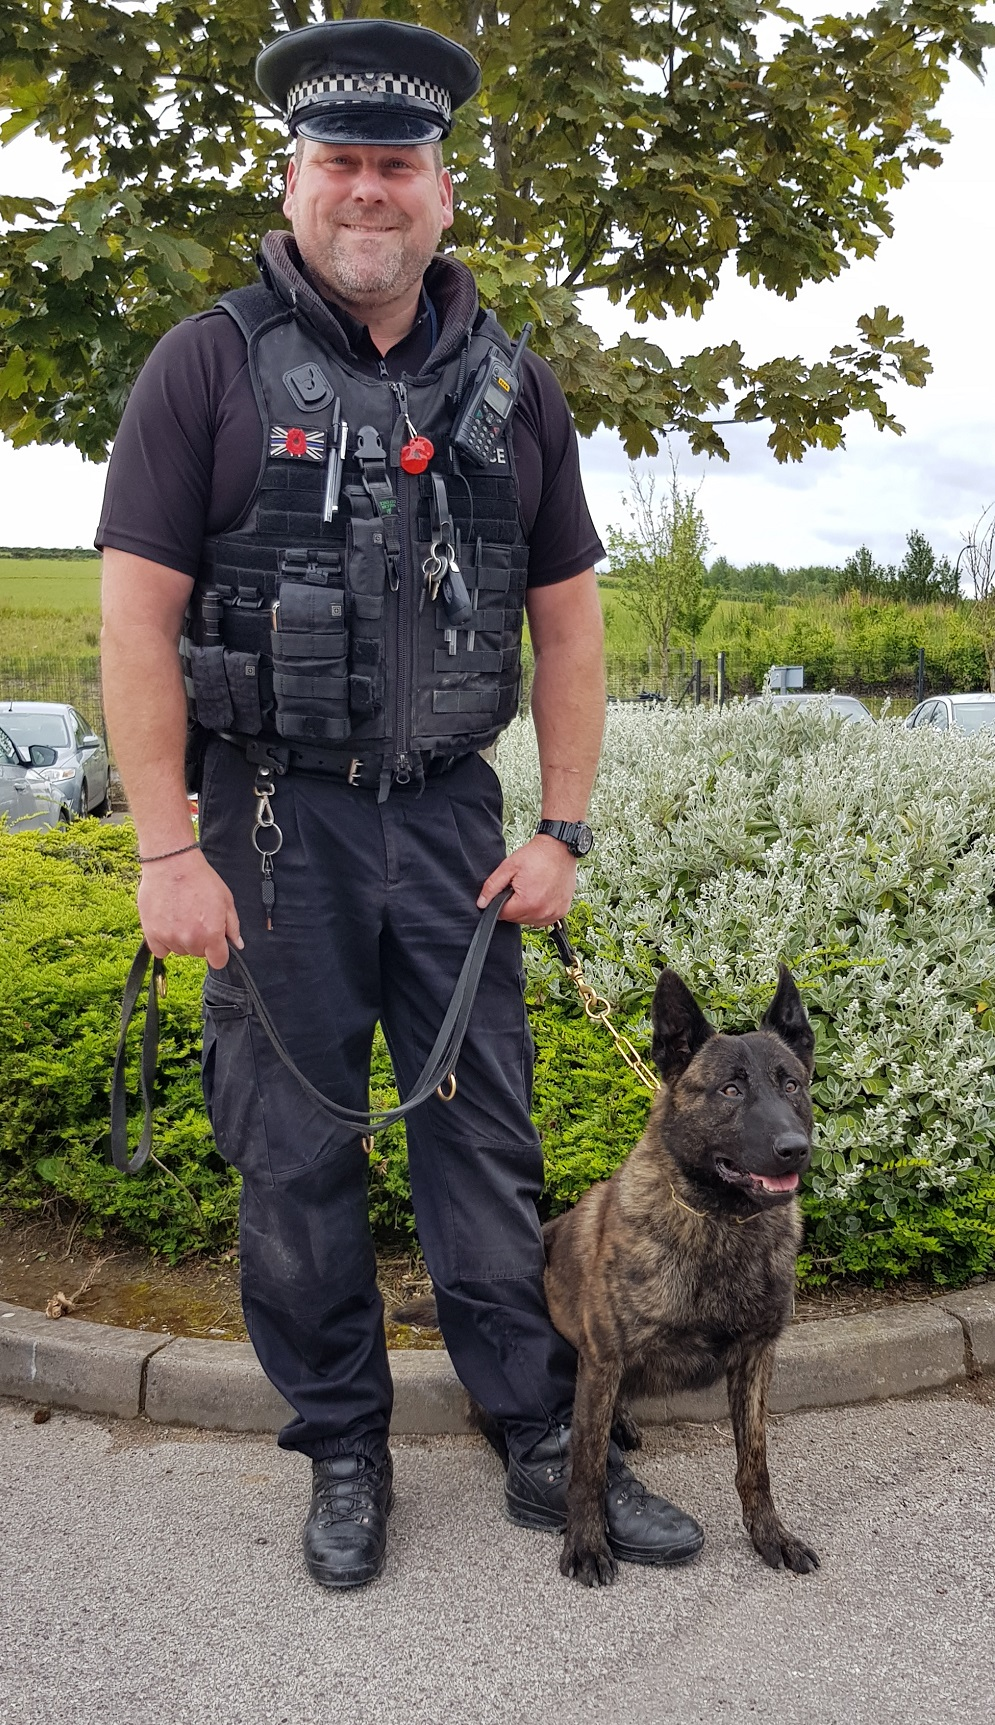 PC Greaves with PD Benson